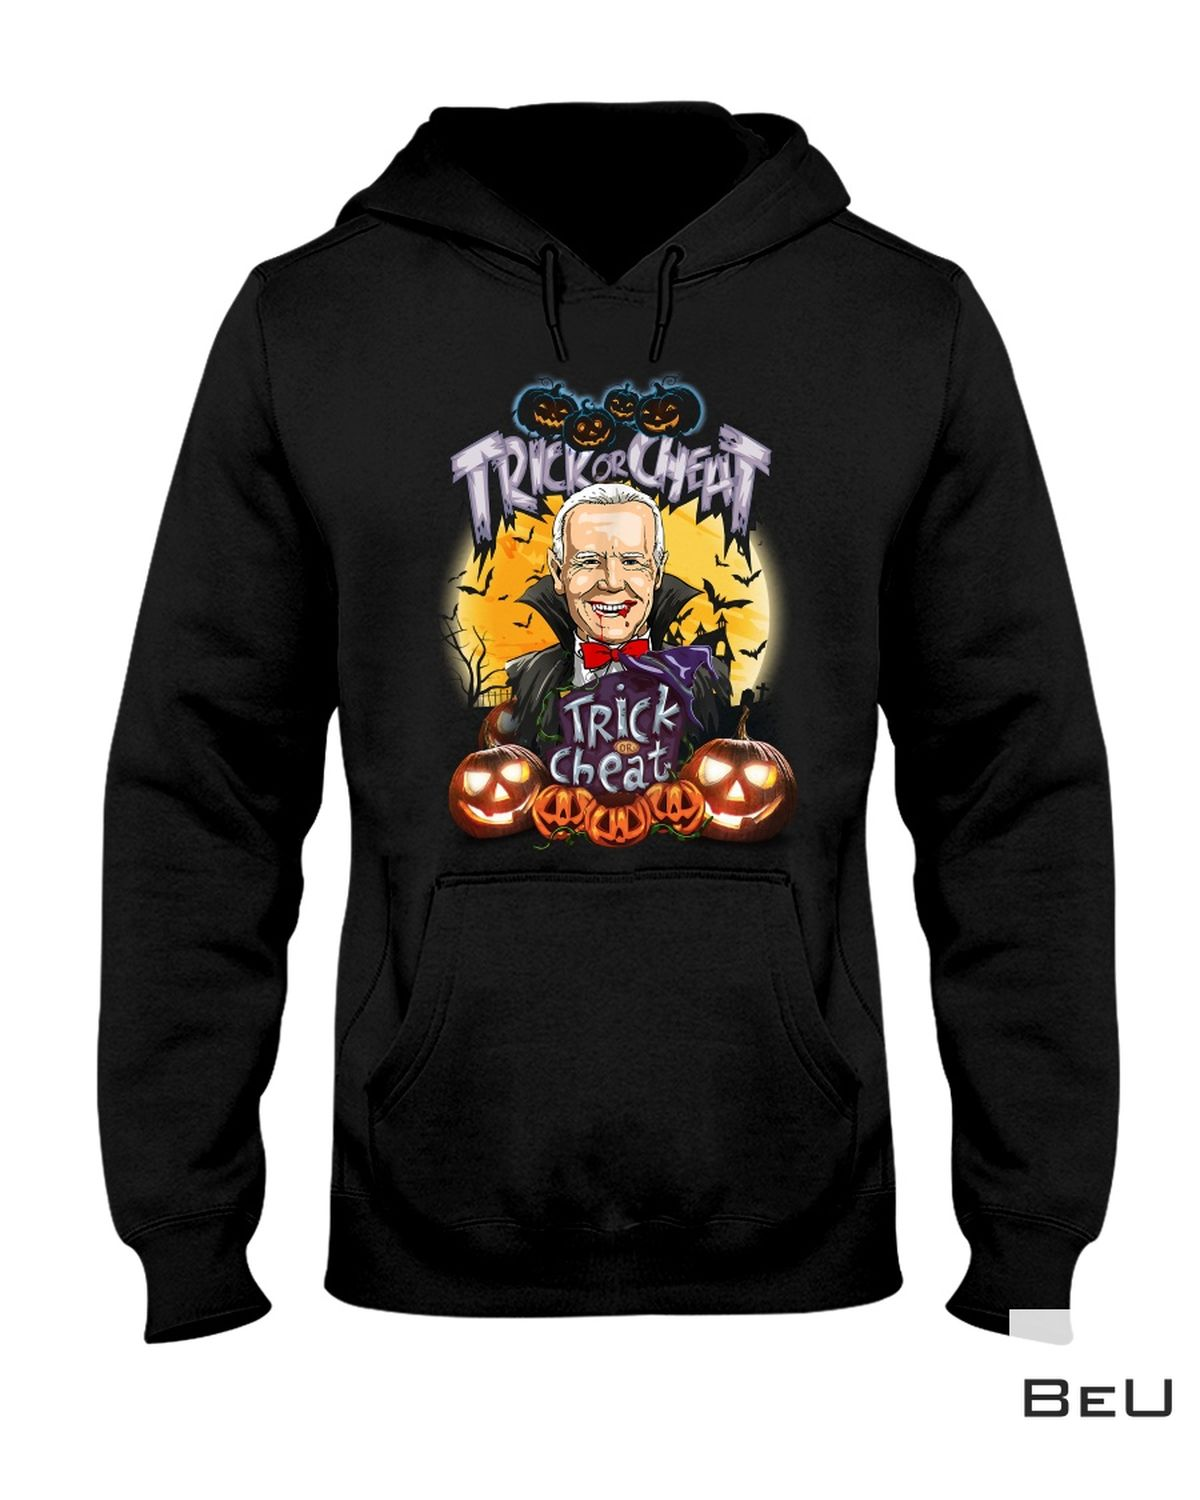 Fast Shipping Trick Or Cheat Halloween Shirt, hoodie